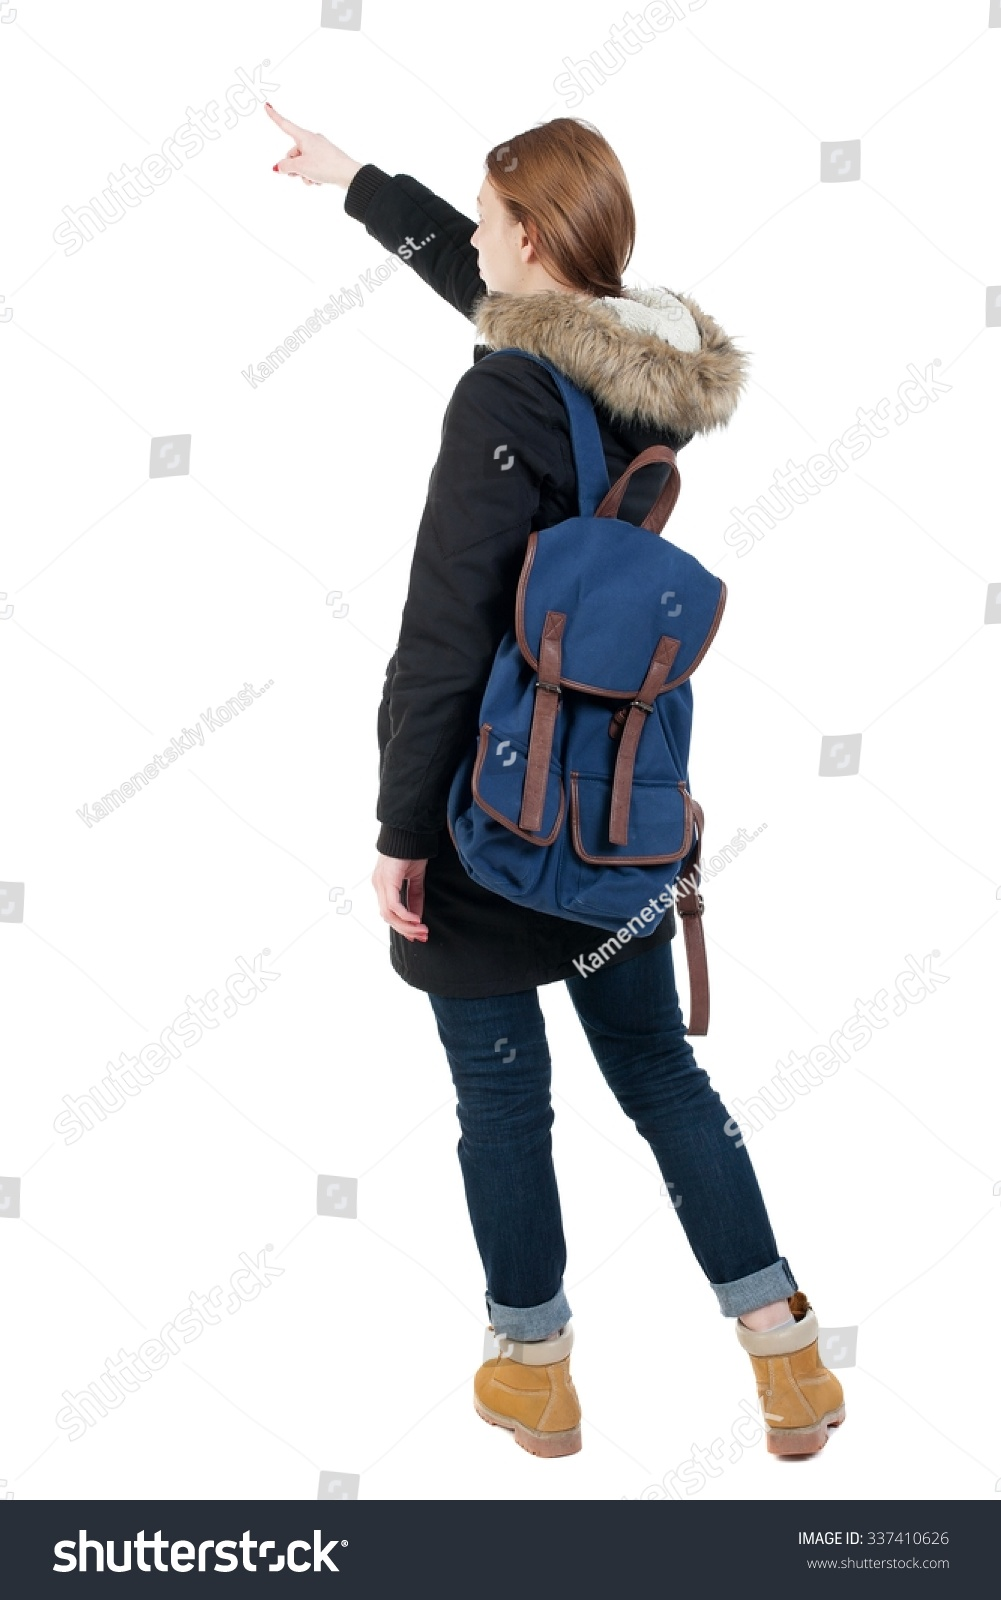 60c2fd8c69 Back view of pointing young women in parka with backpack. Young girl  gesture. Rear view people collection. backside view of person.